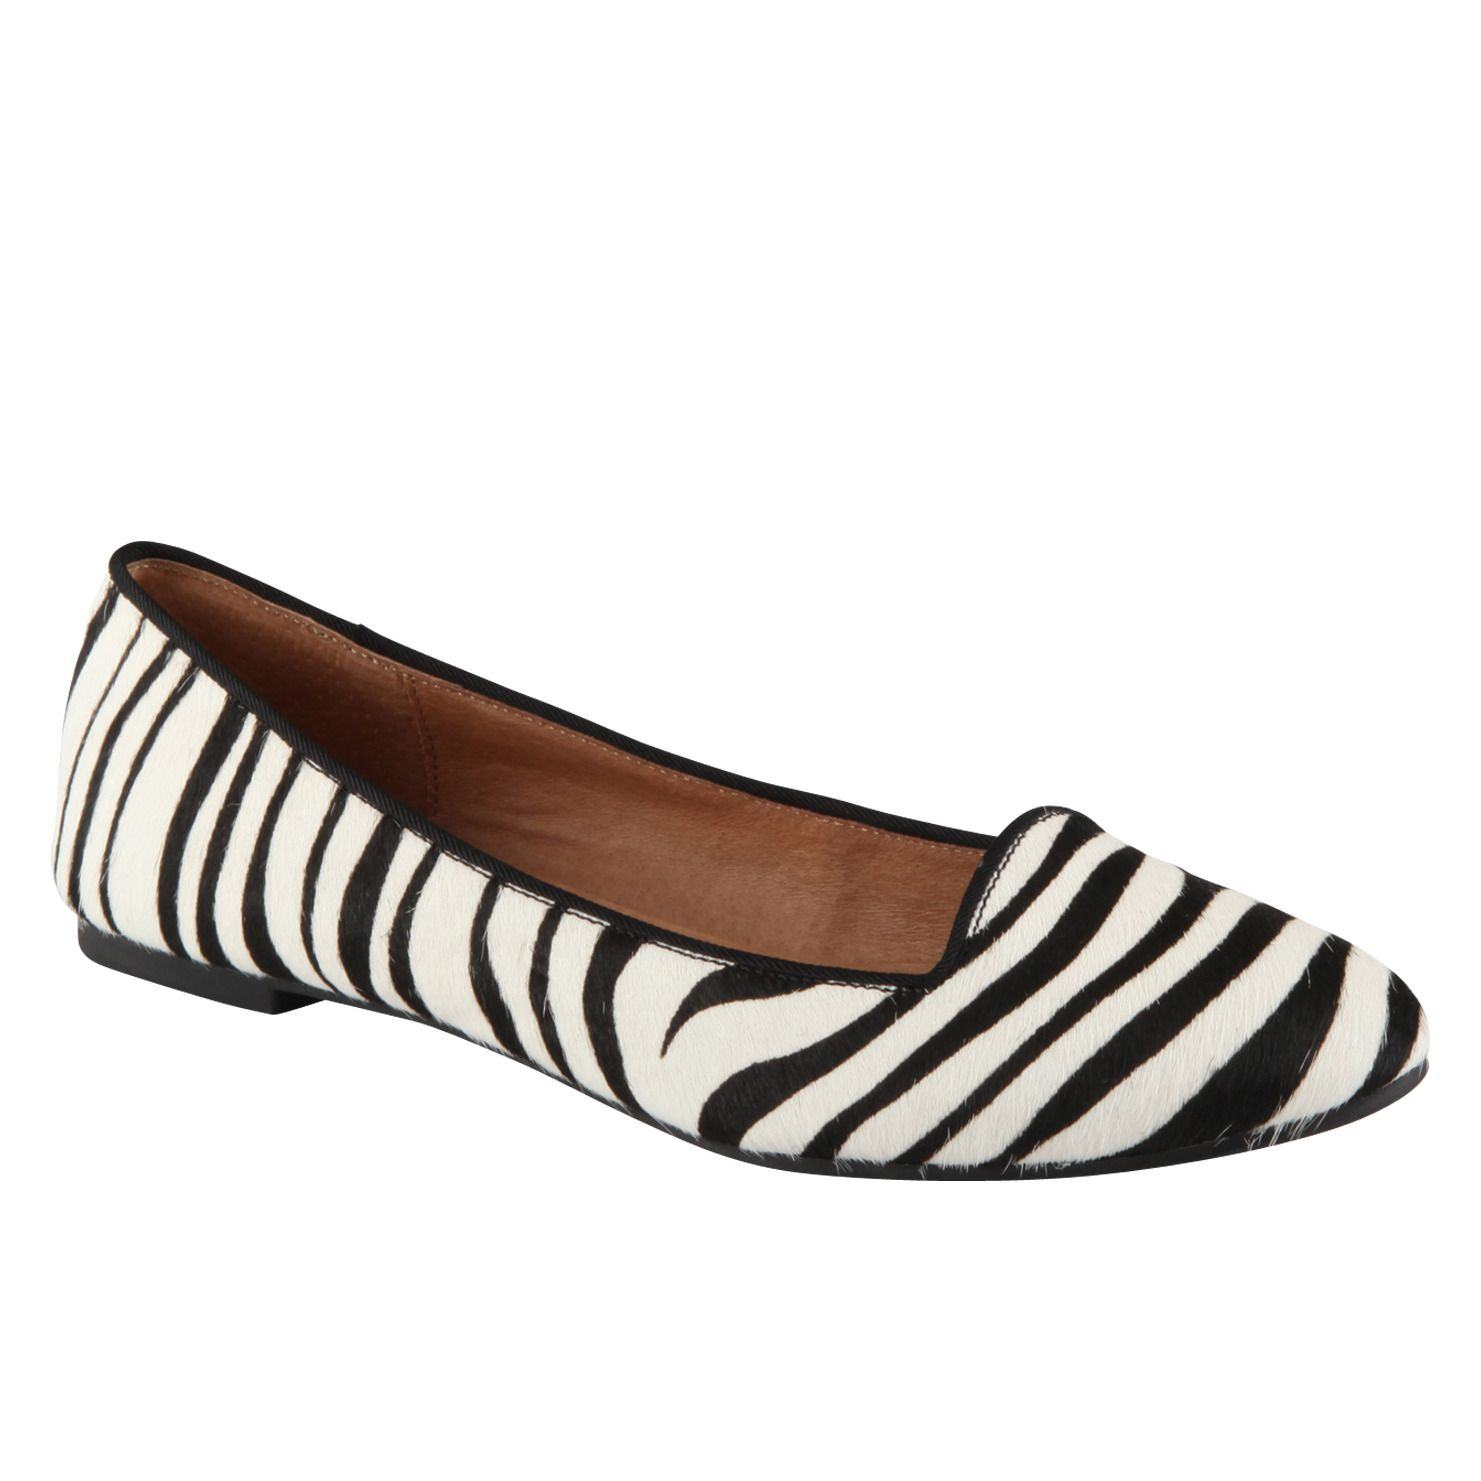 9f7b1bde29b8 OSTLIE - women s flats shoes for sale at ALDO Shoes. Zebra print loafers!  Change it up and add the zebra in